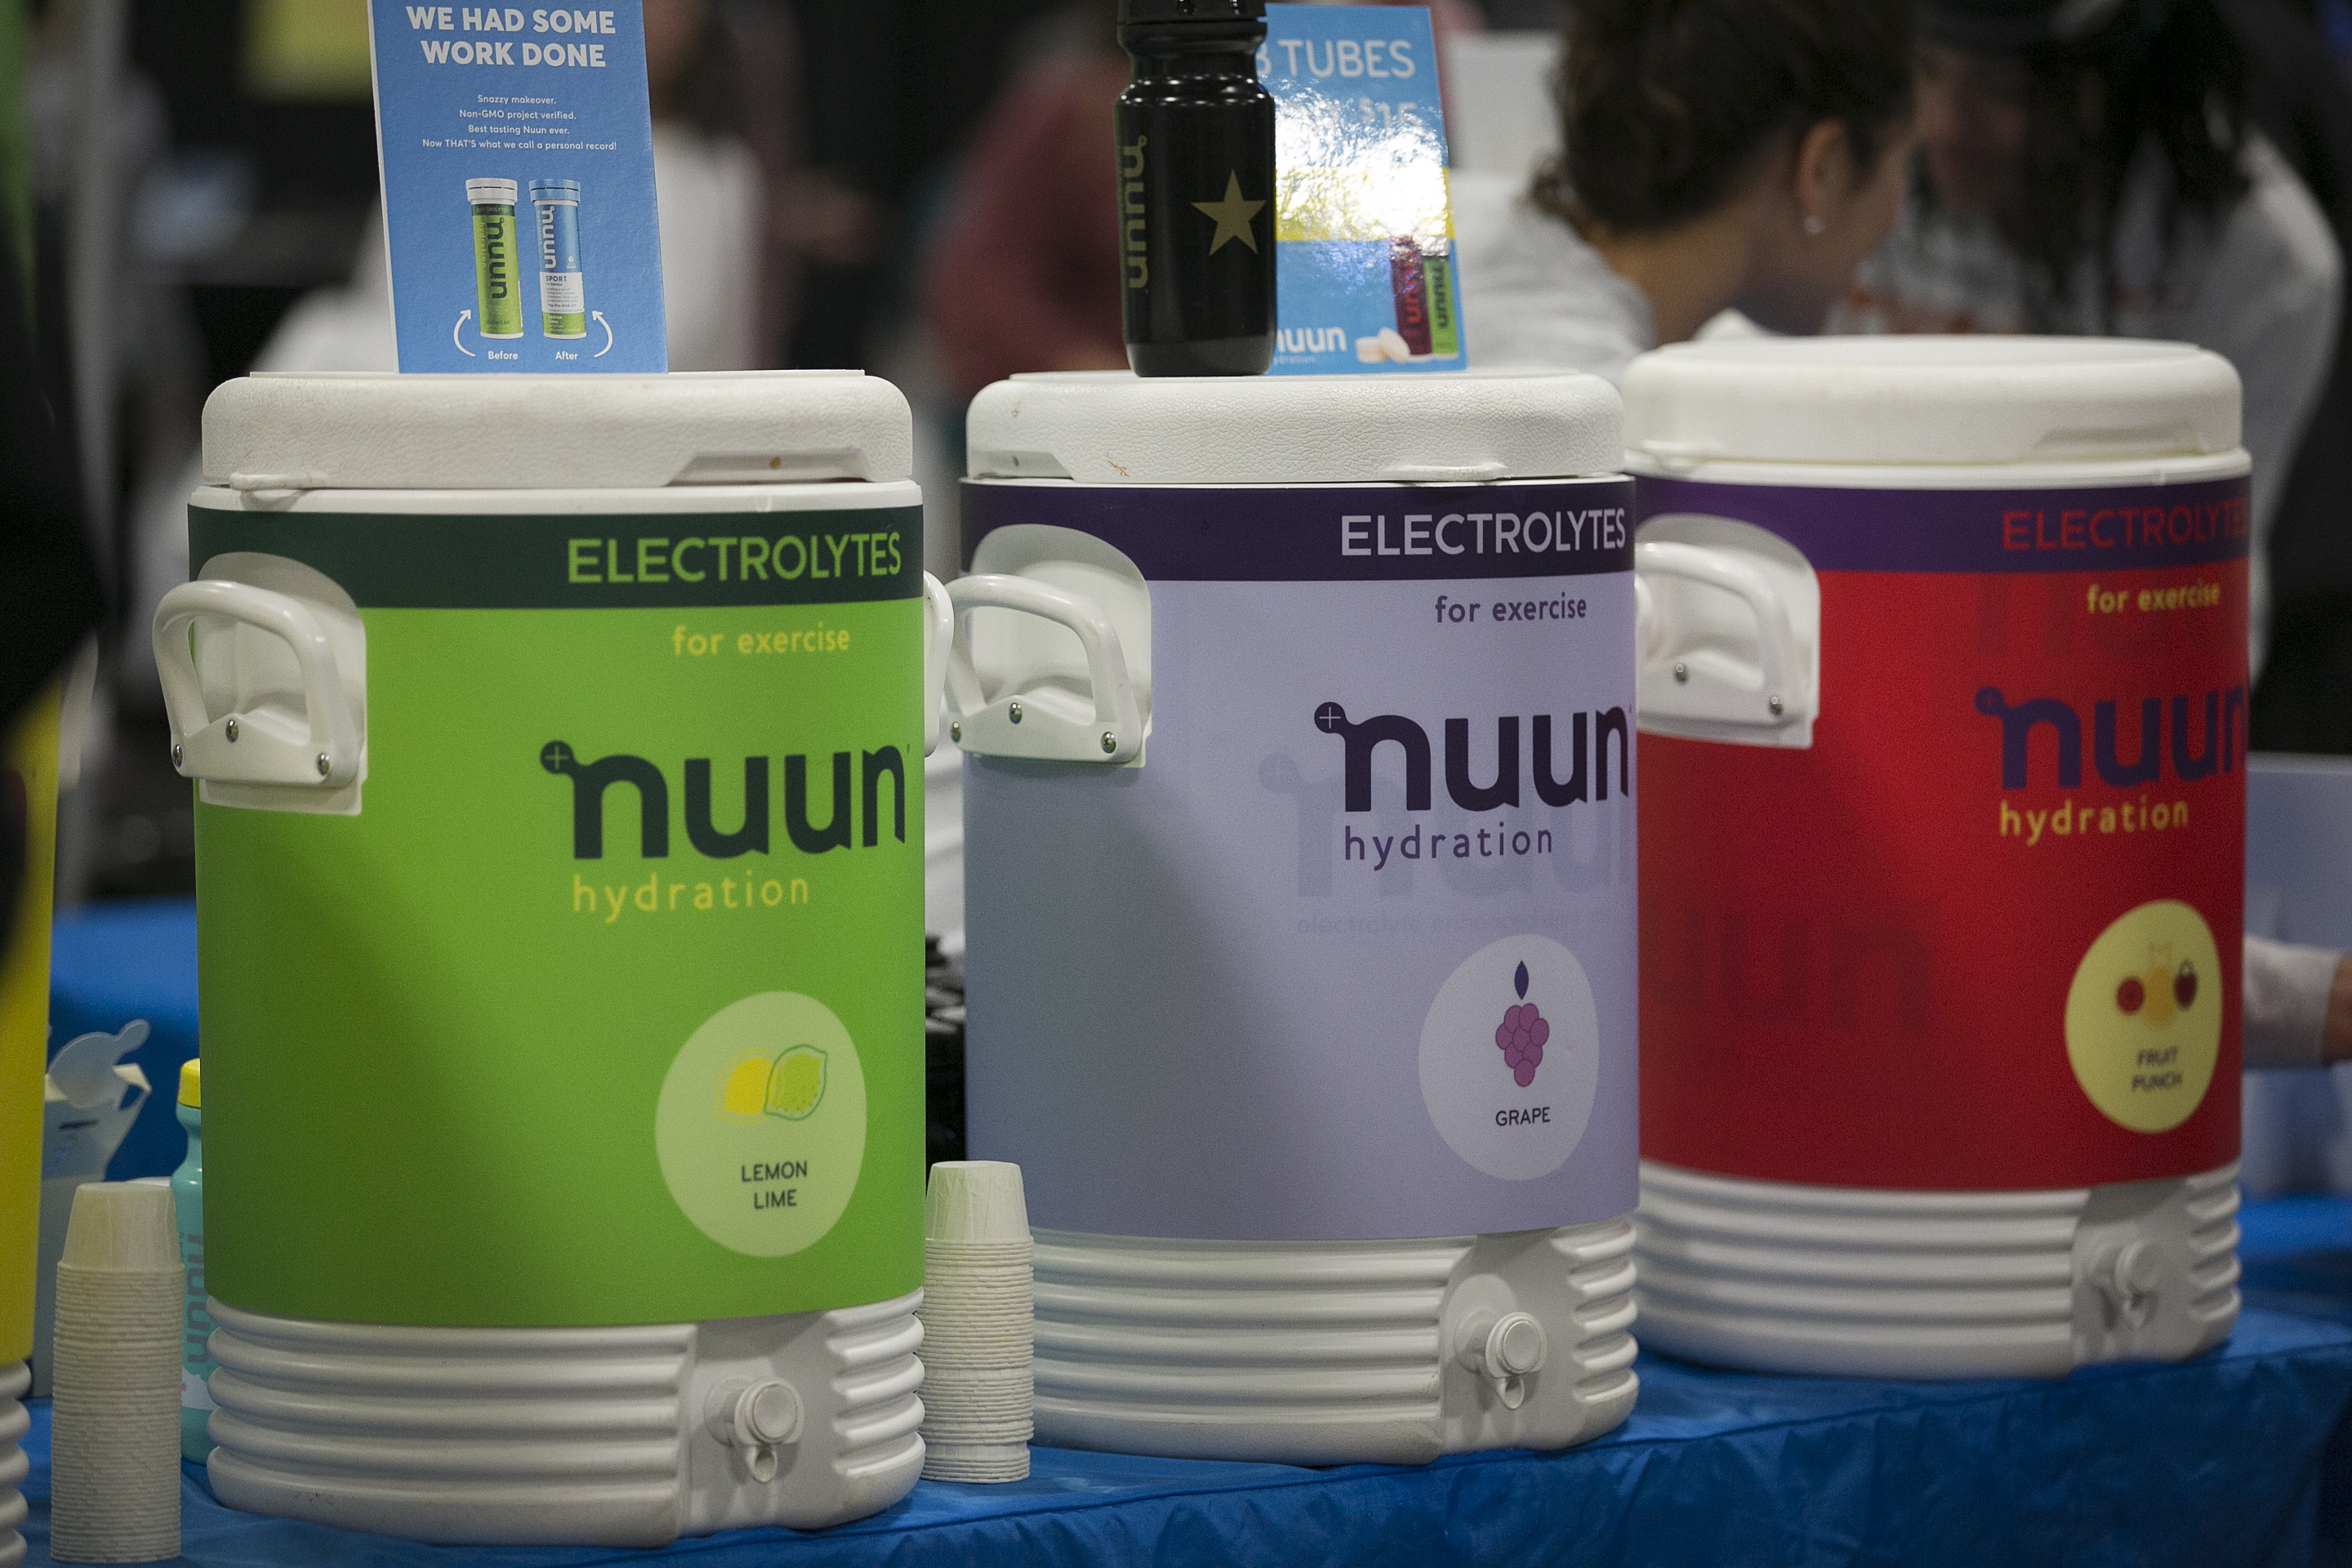 nuun display at Austin Marathon expo. nuun is the perfect drink for your long training run.